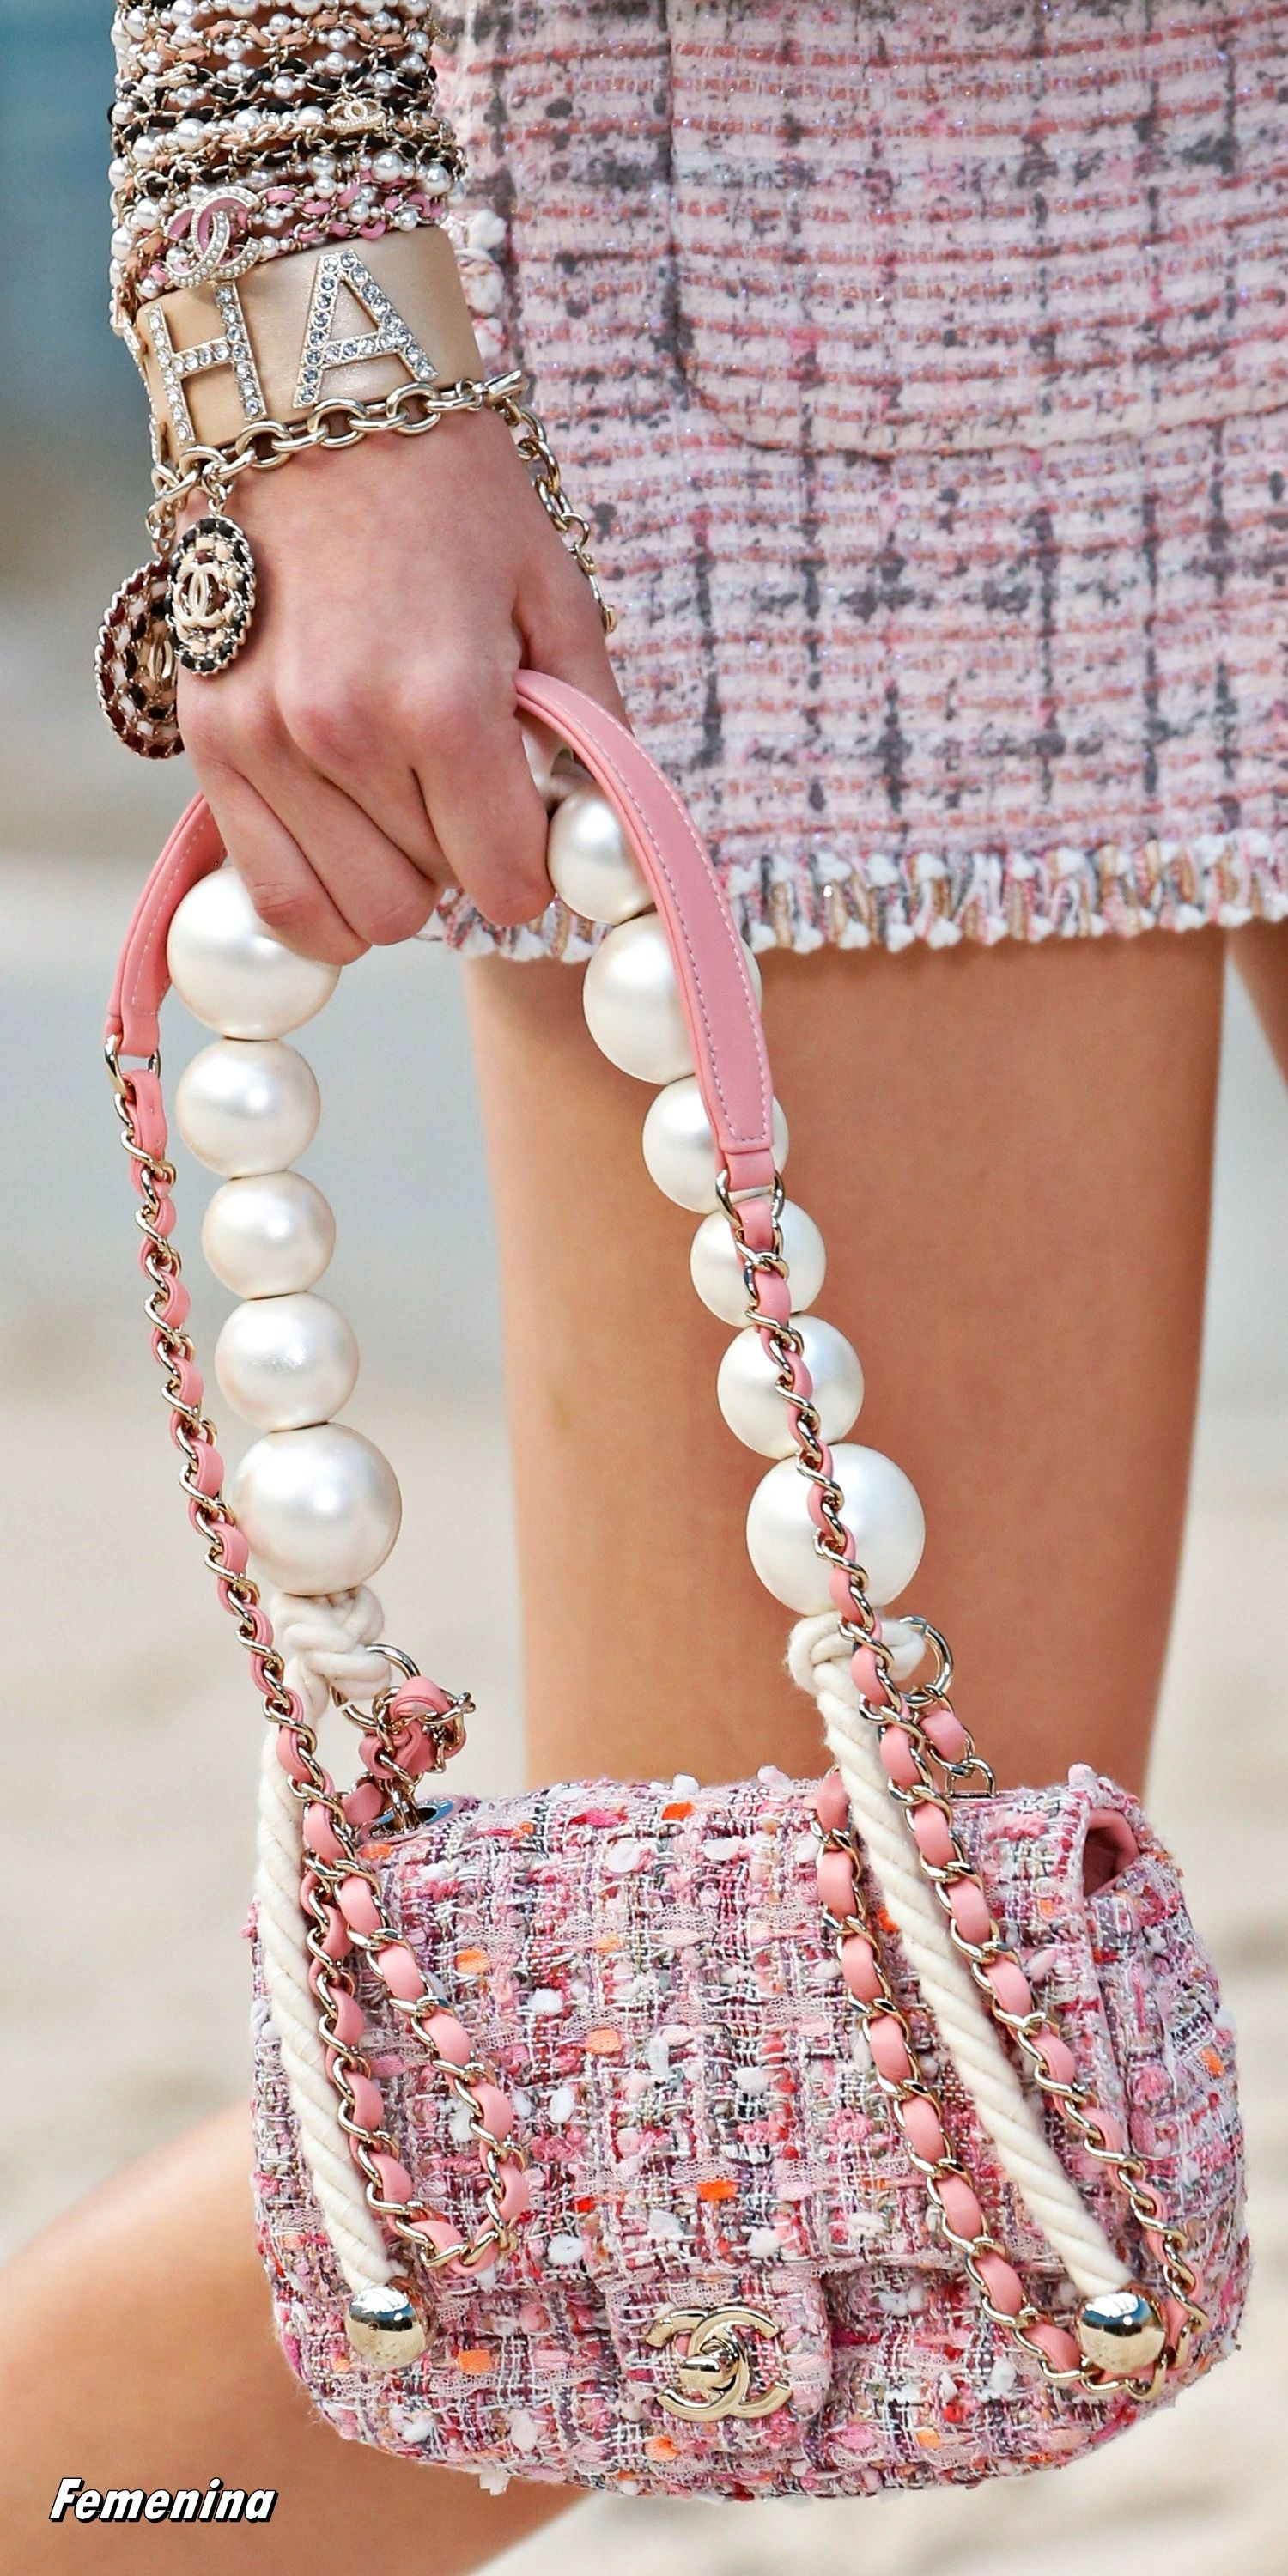 07382ae1e1a7 Chanel Spring Summer 2019 RTW -Details bag accessories